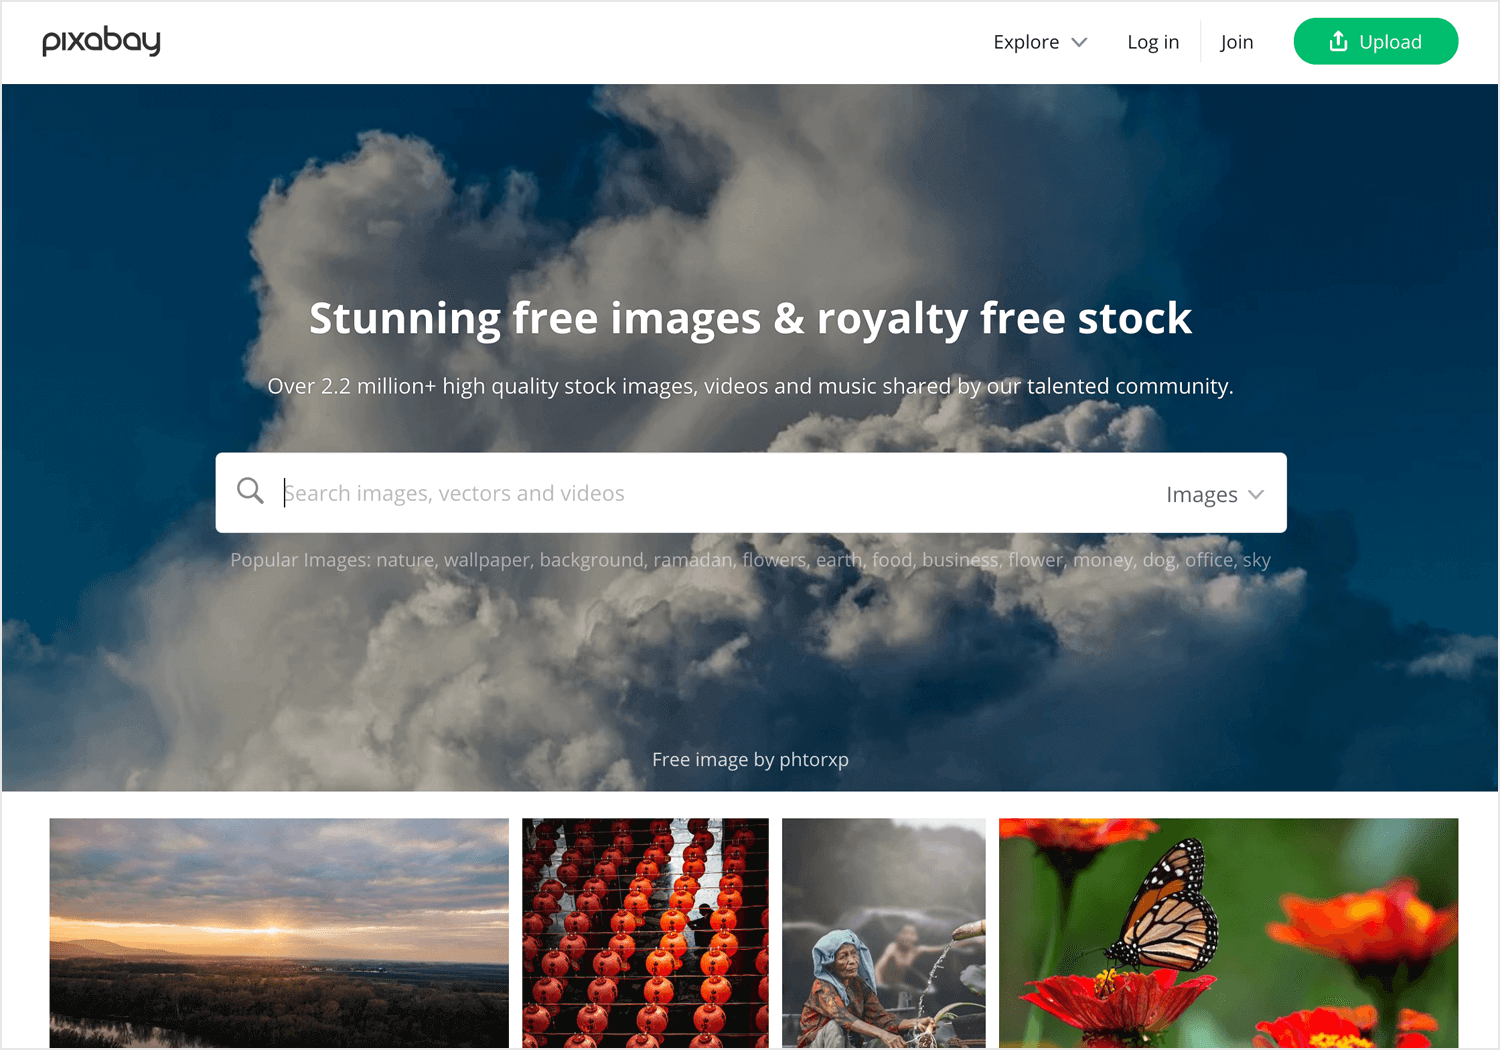 Free vector images - Pixabay homepage